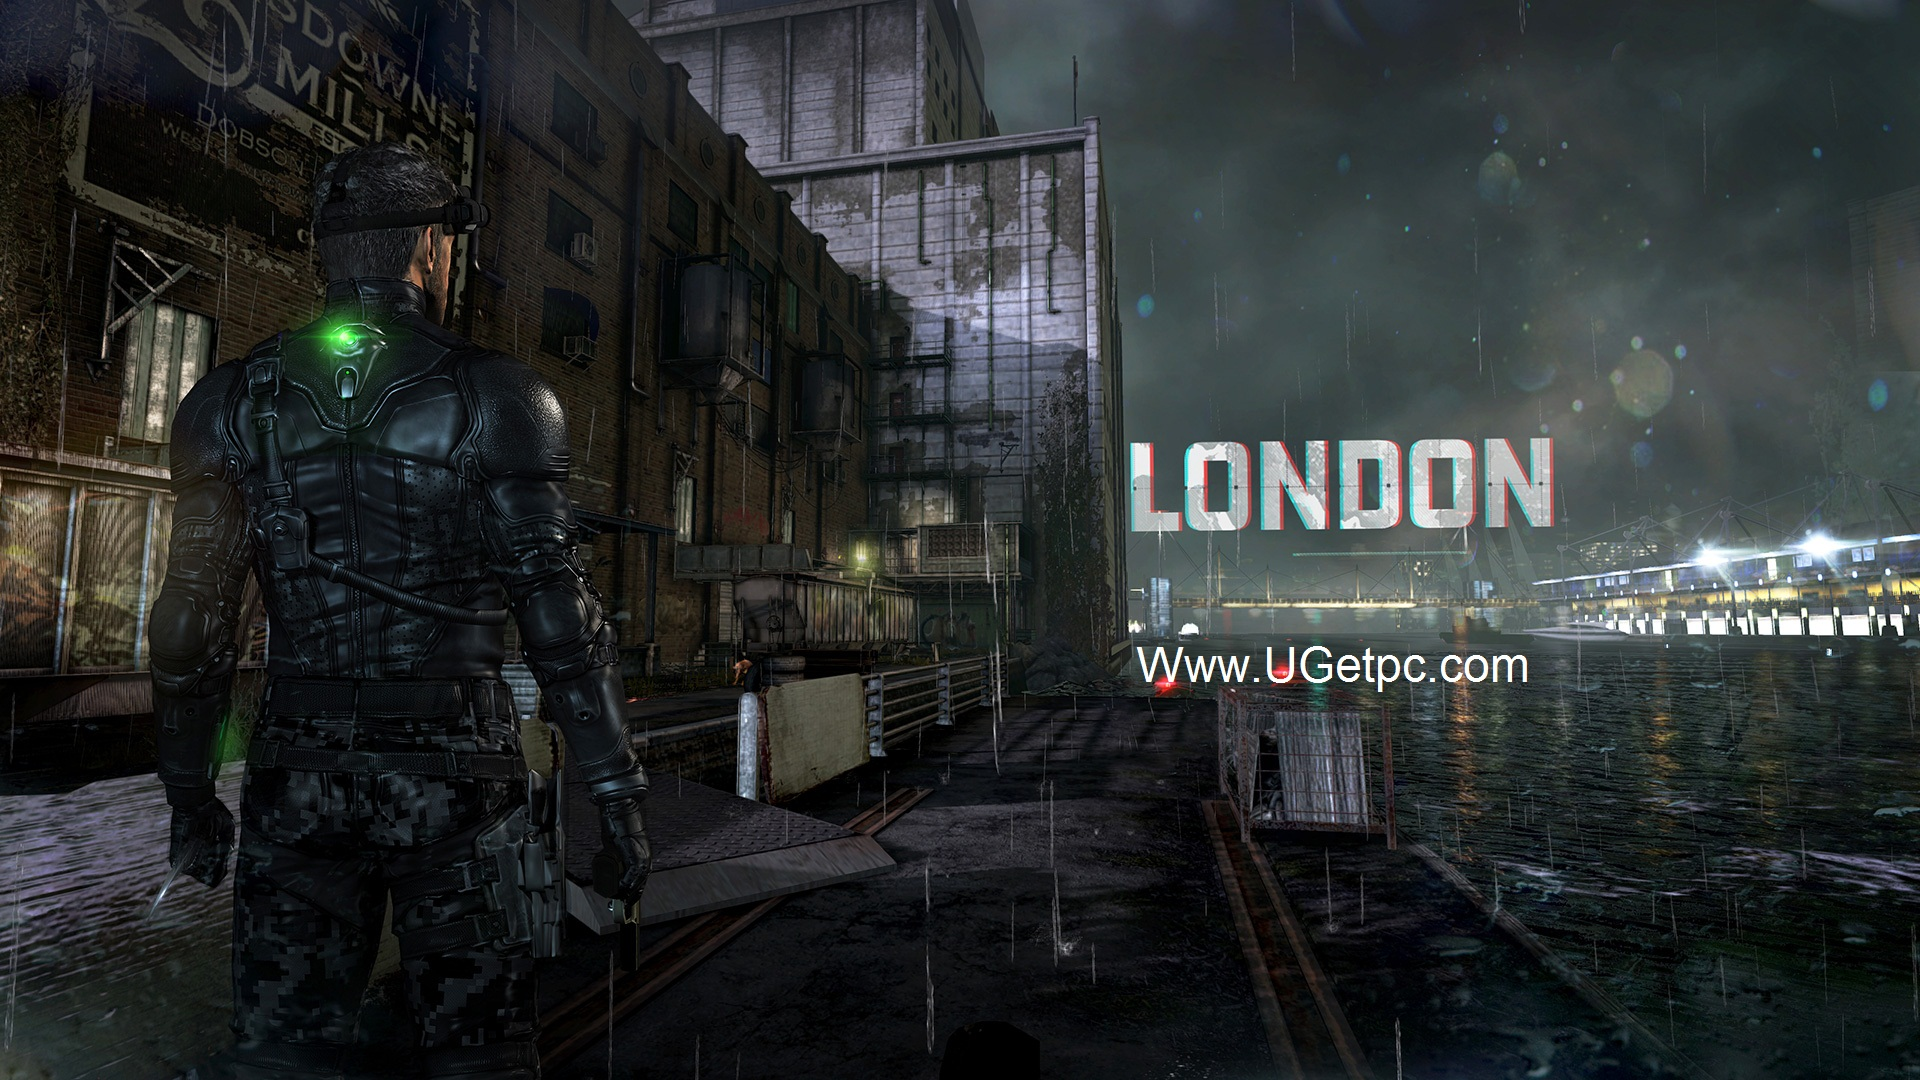 Splinter-Cell-Blacklist-main-UGetpc